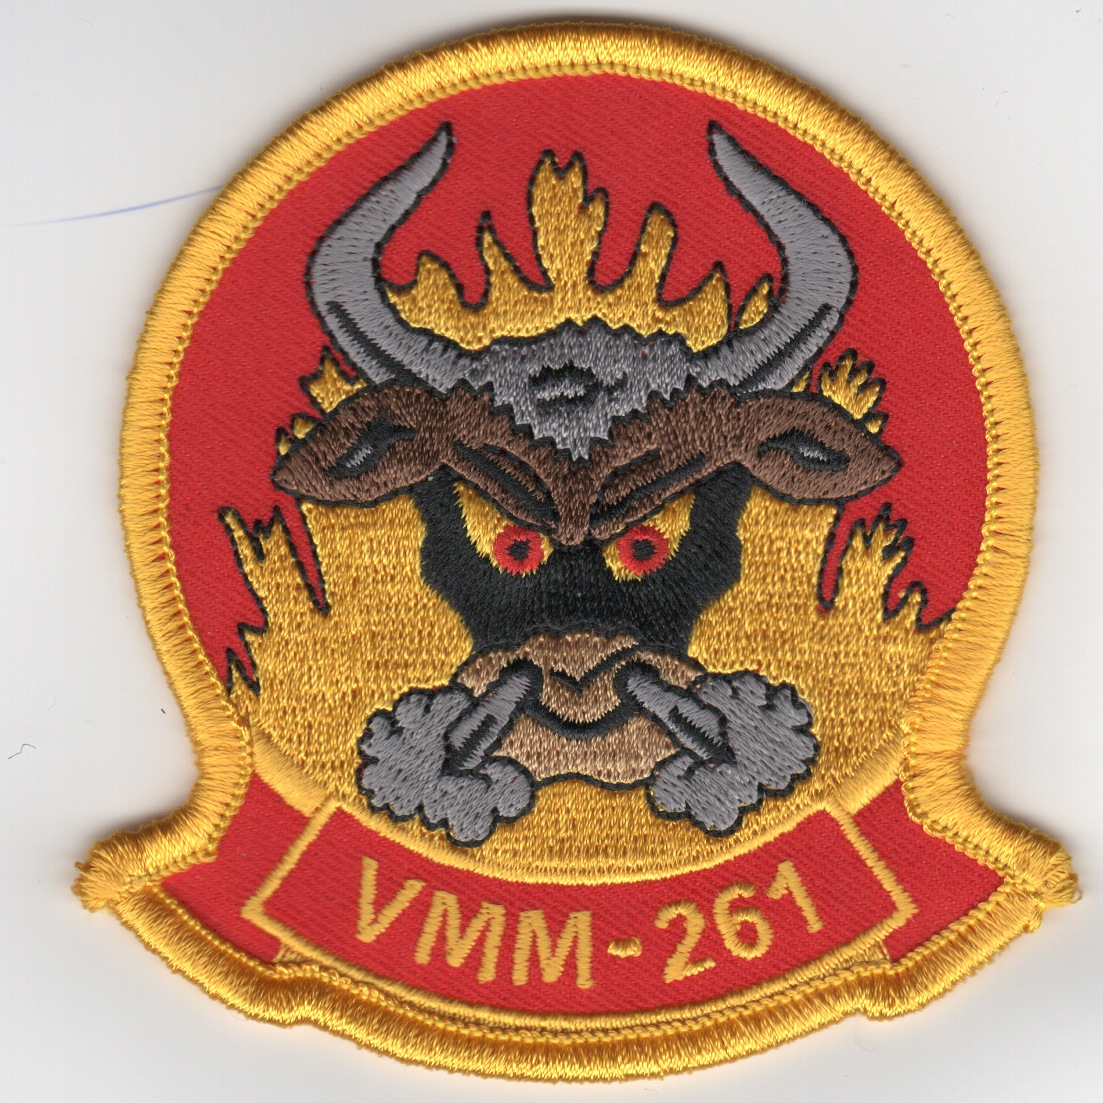 VMM-261 Squadron Patch (Red/Yellow)